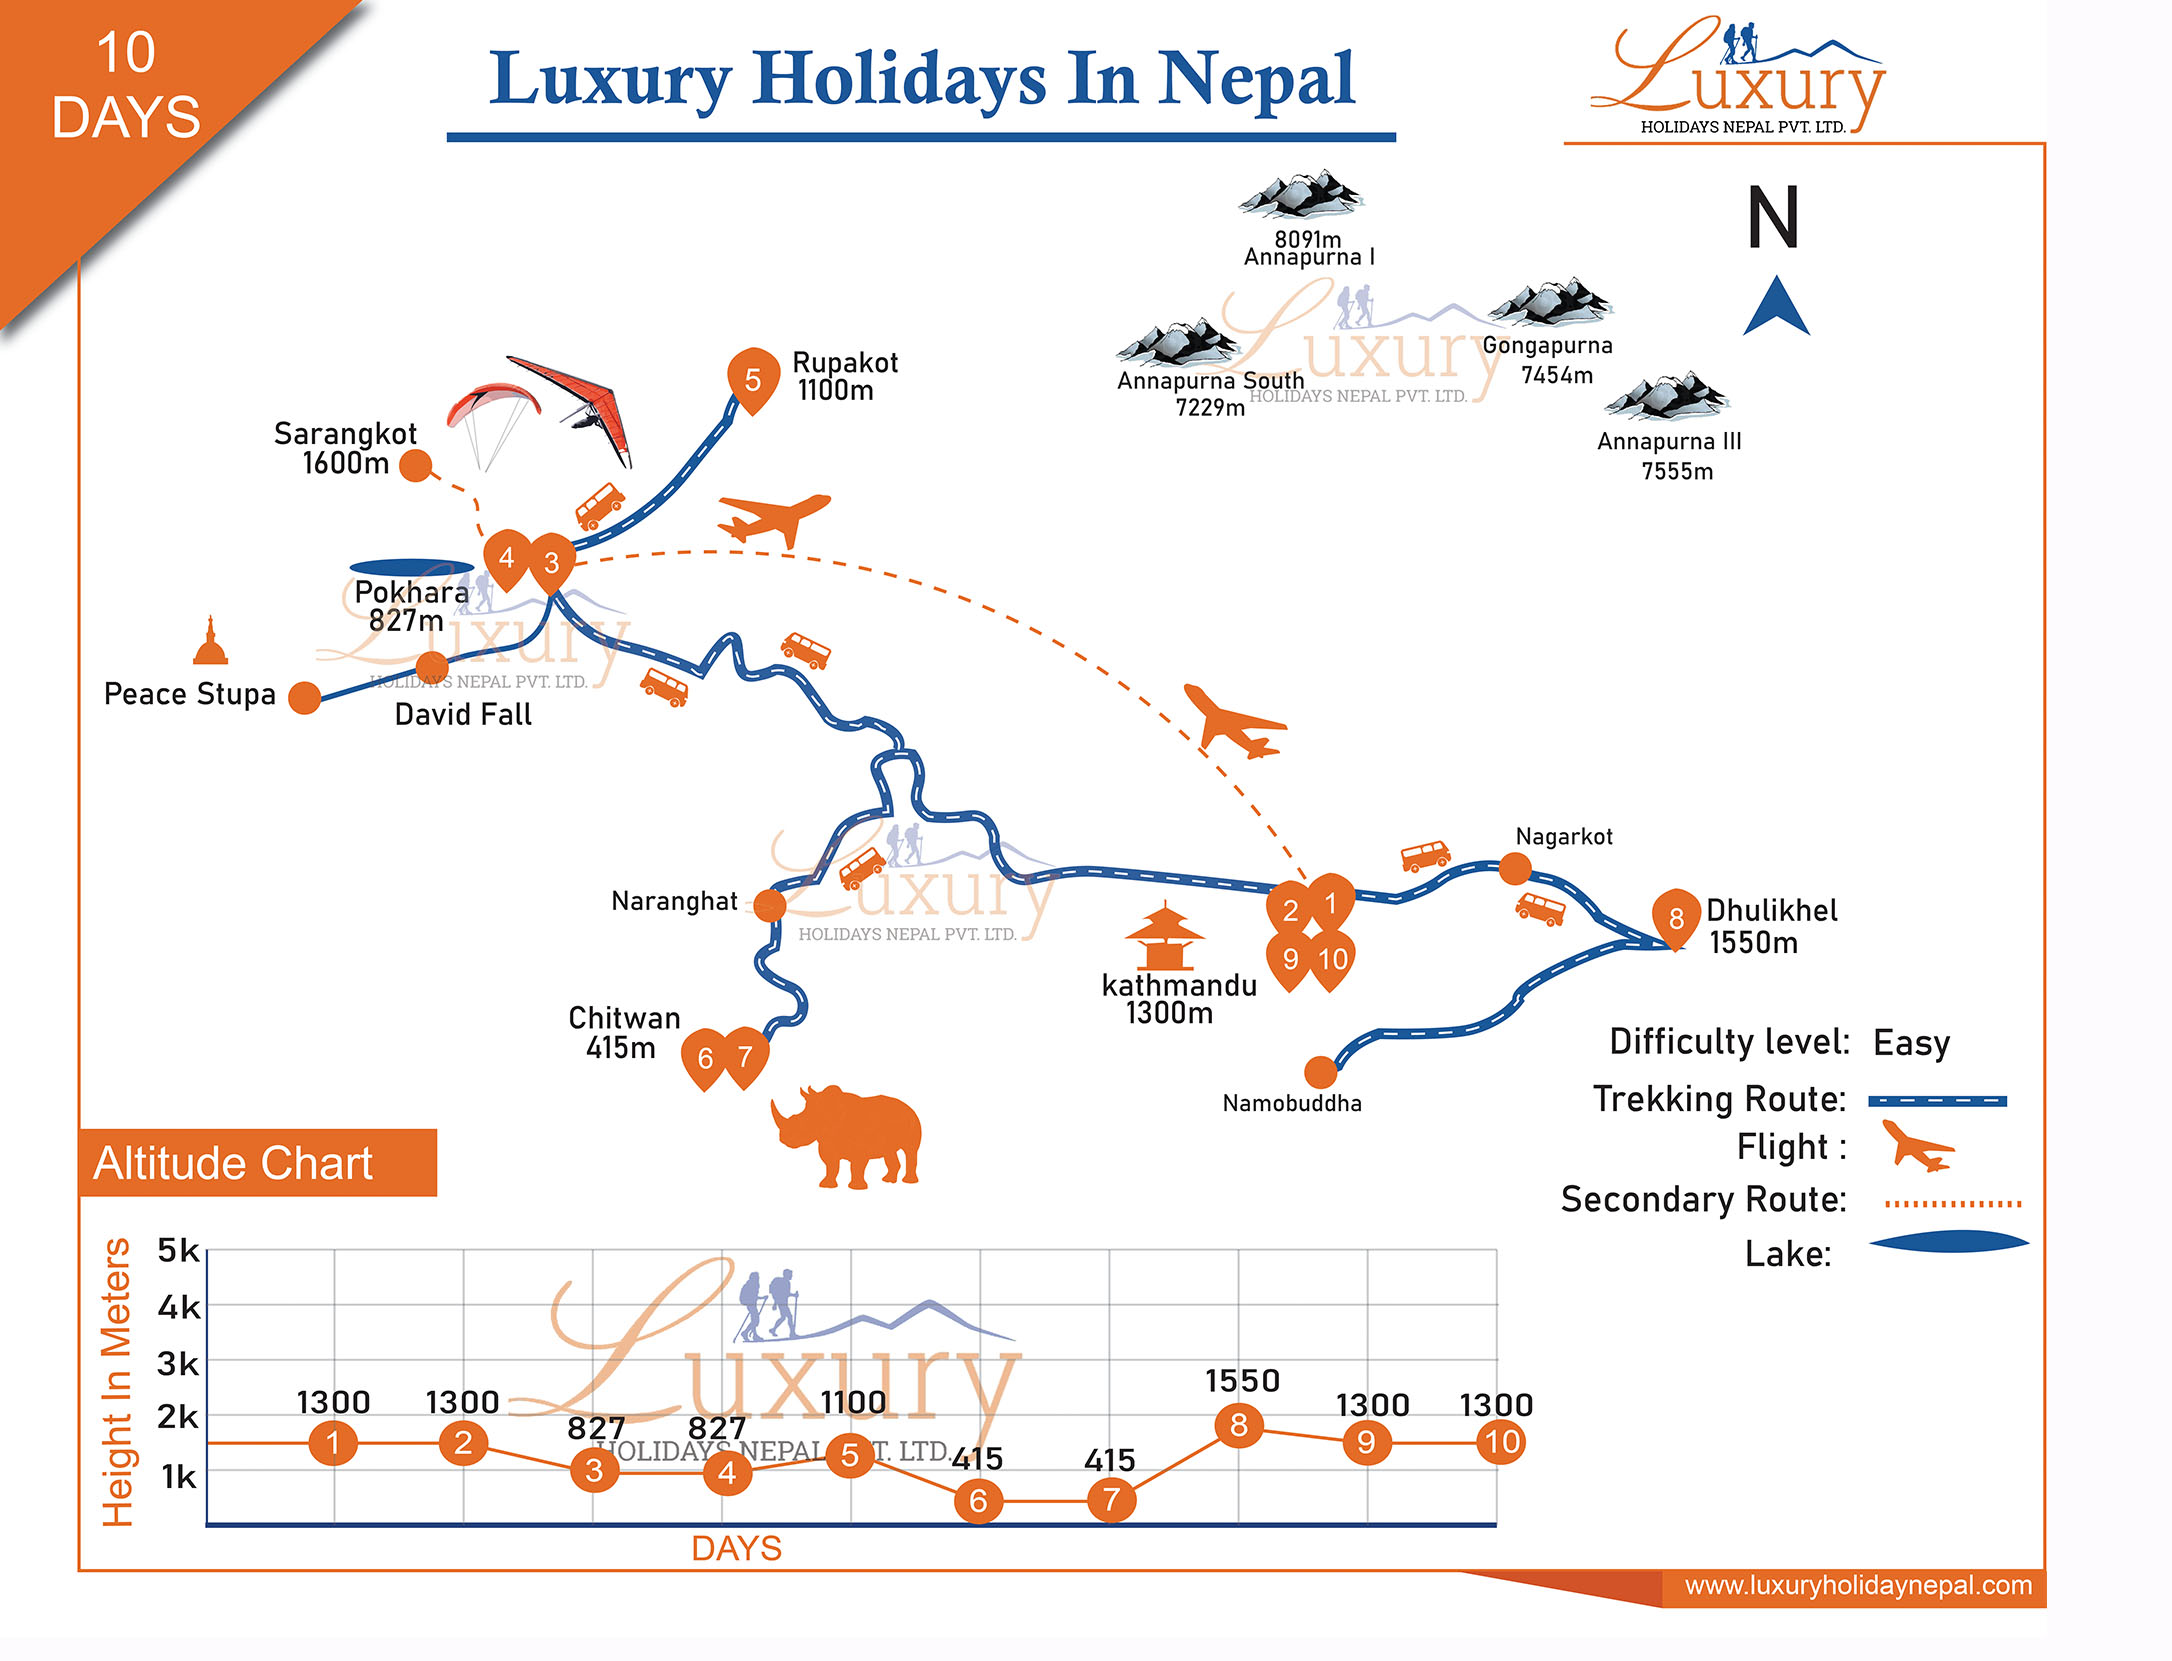 Luxury Holidays in Nepal Trip Map